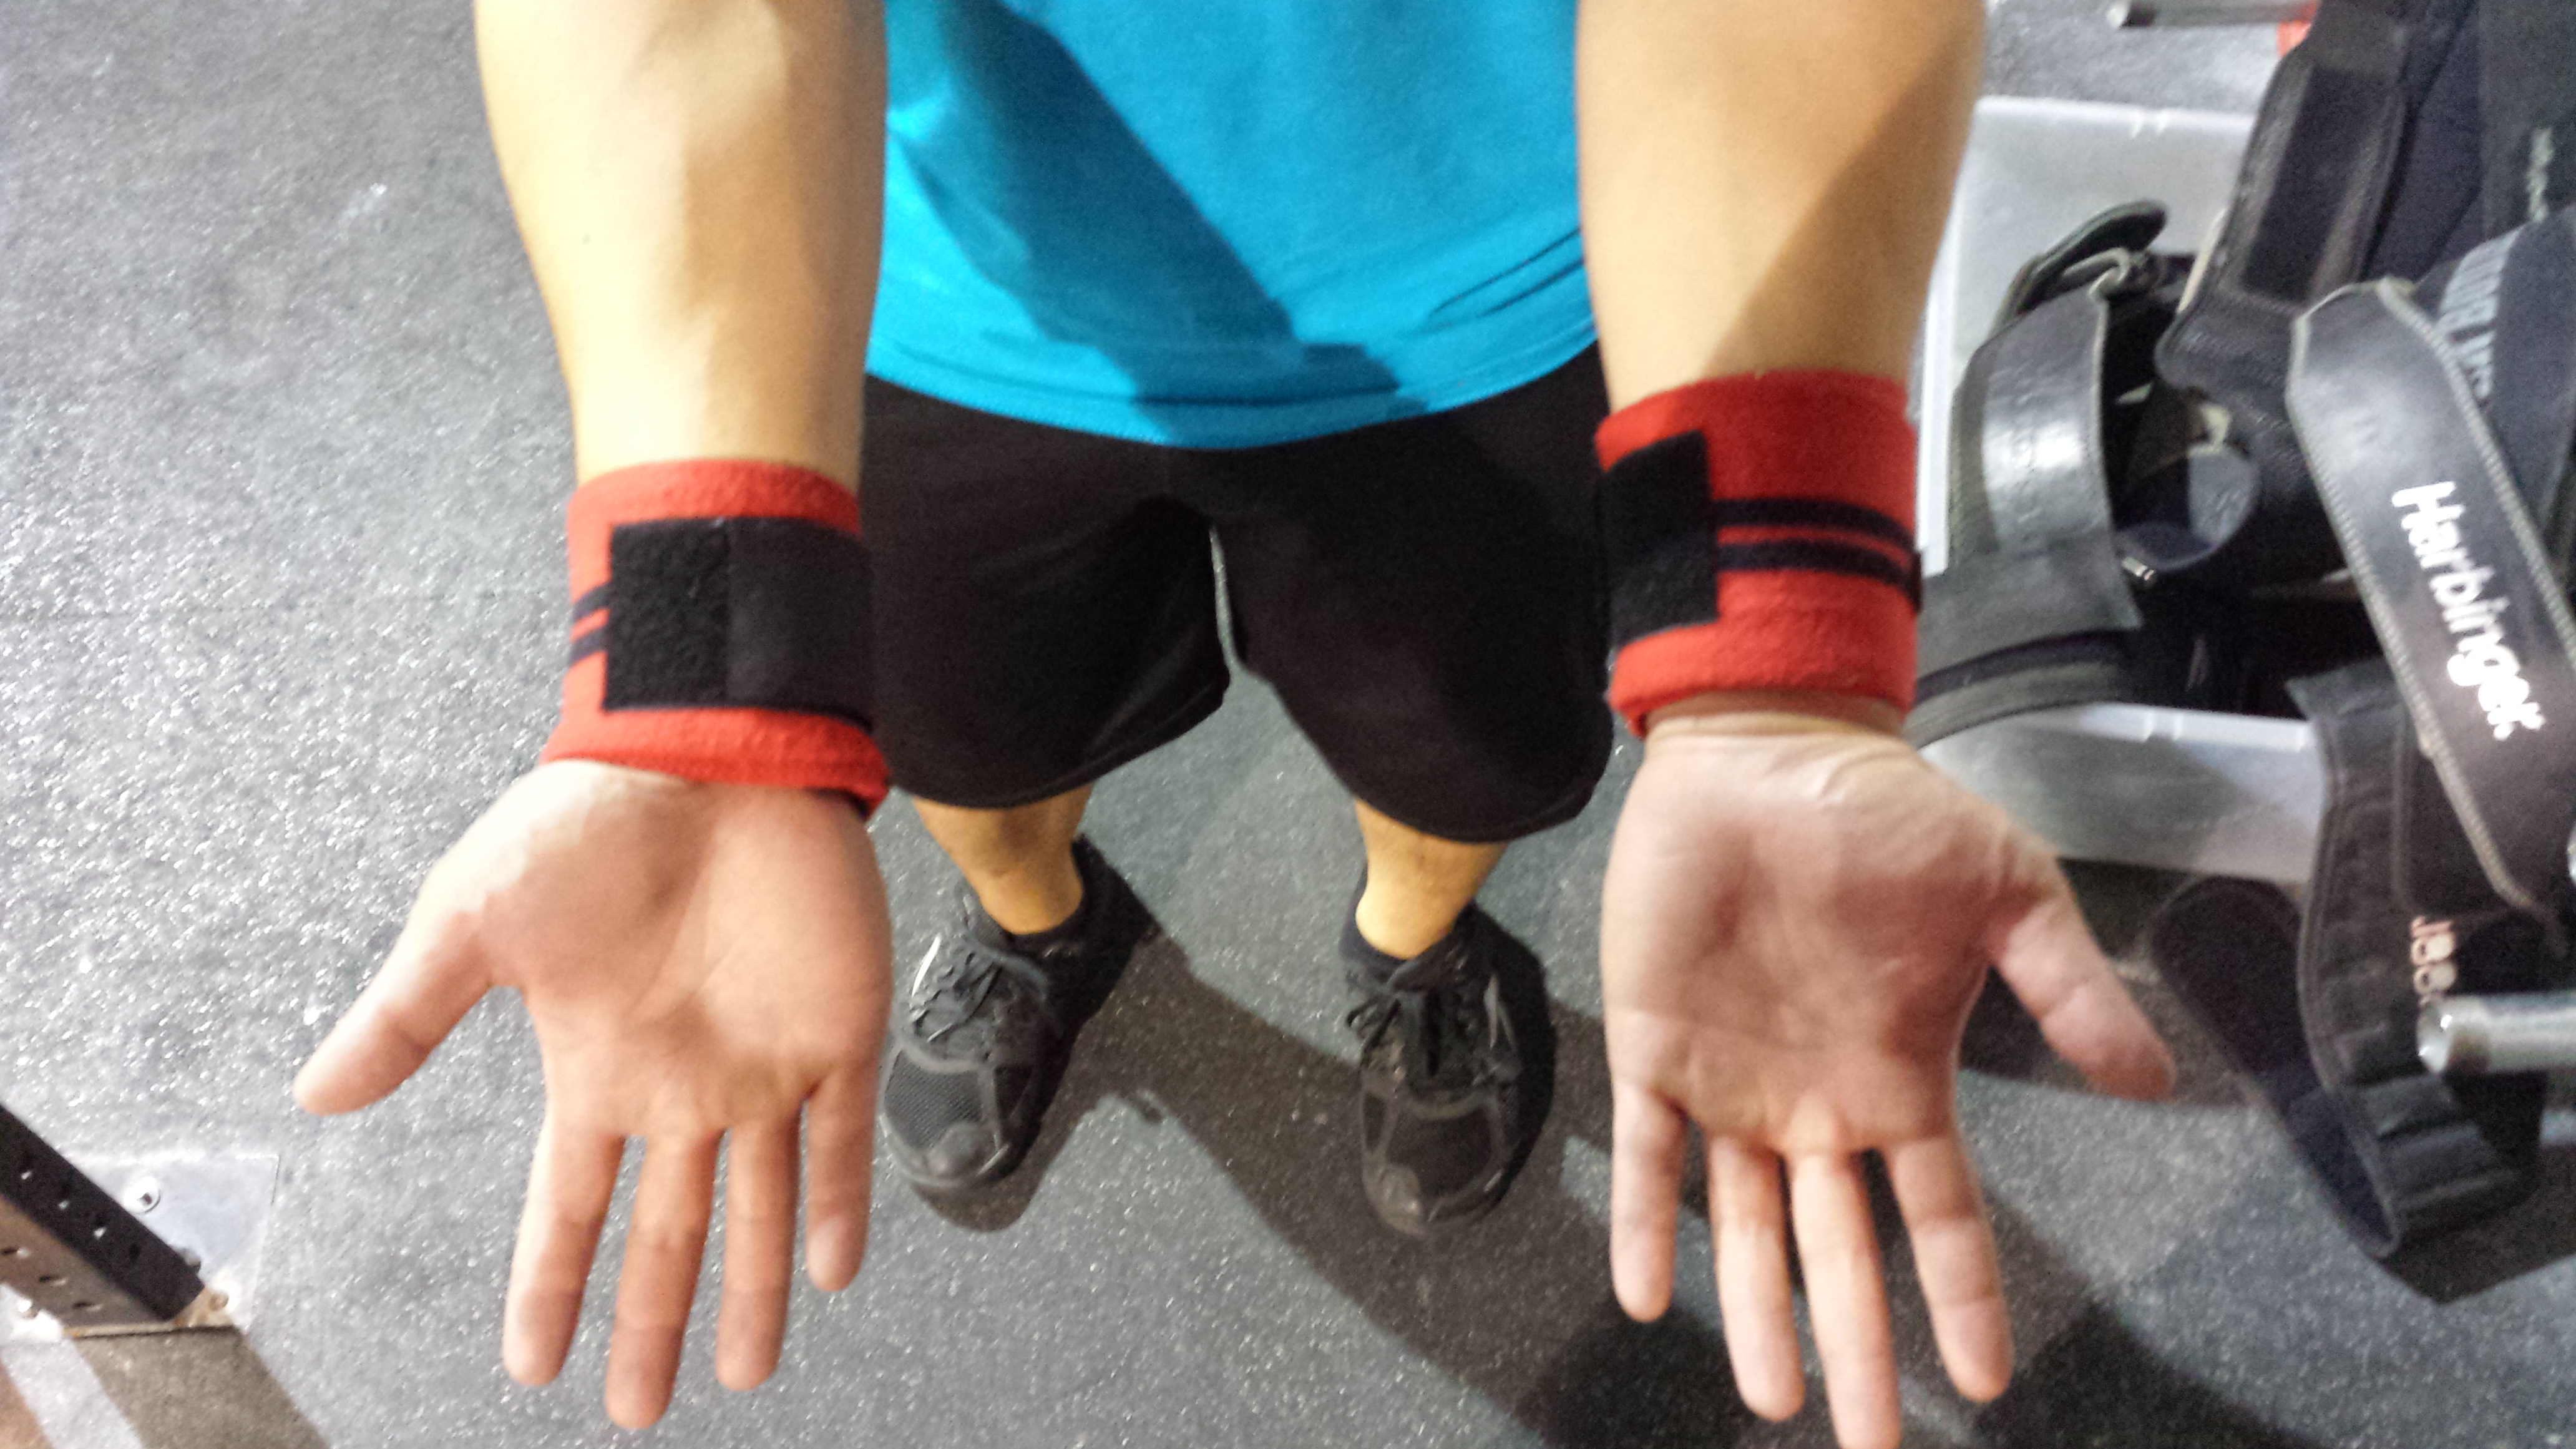 060aa033b6a 5 Tips For Using Wrist Wraps - Invictus Fitness